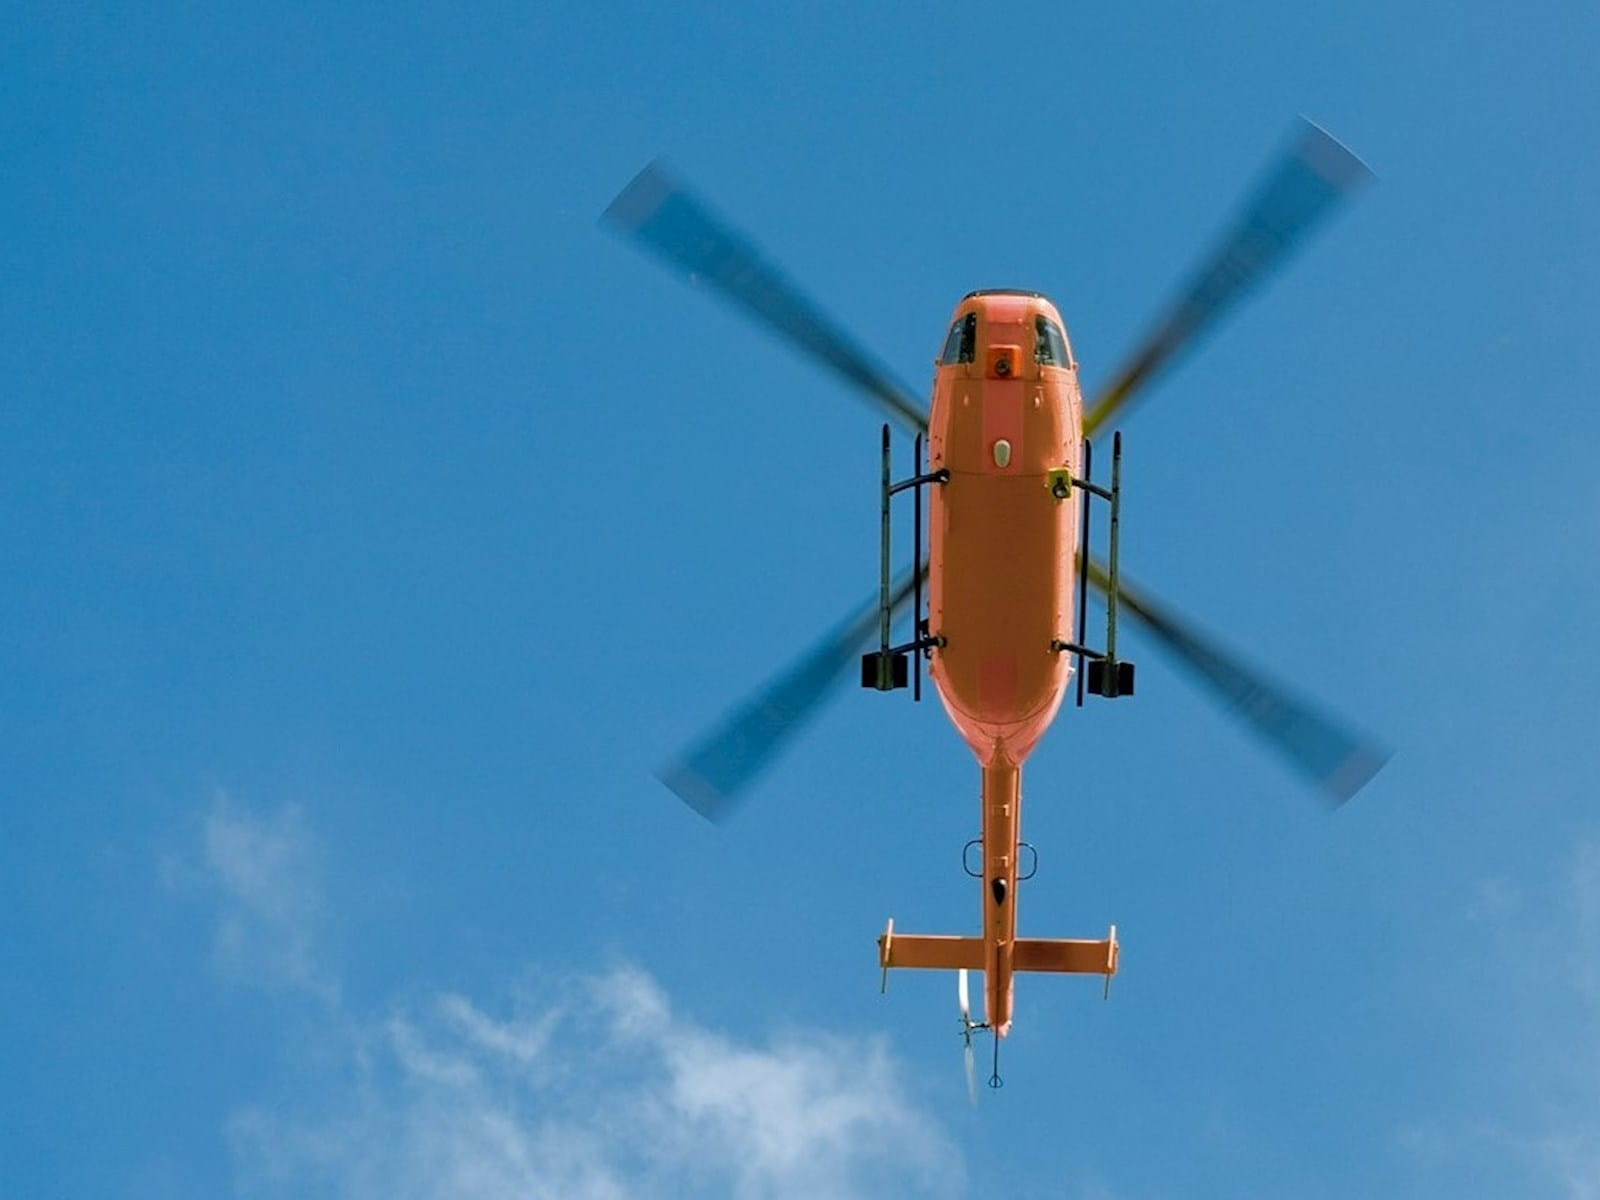 A red helicopter flying overhead.